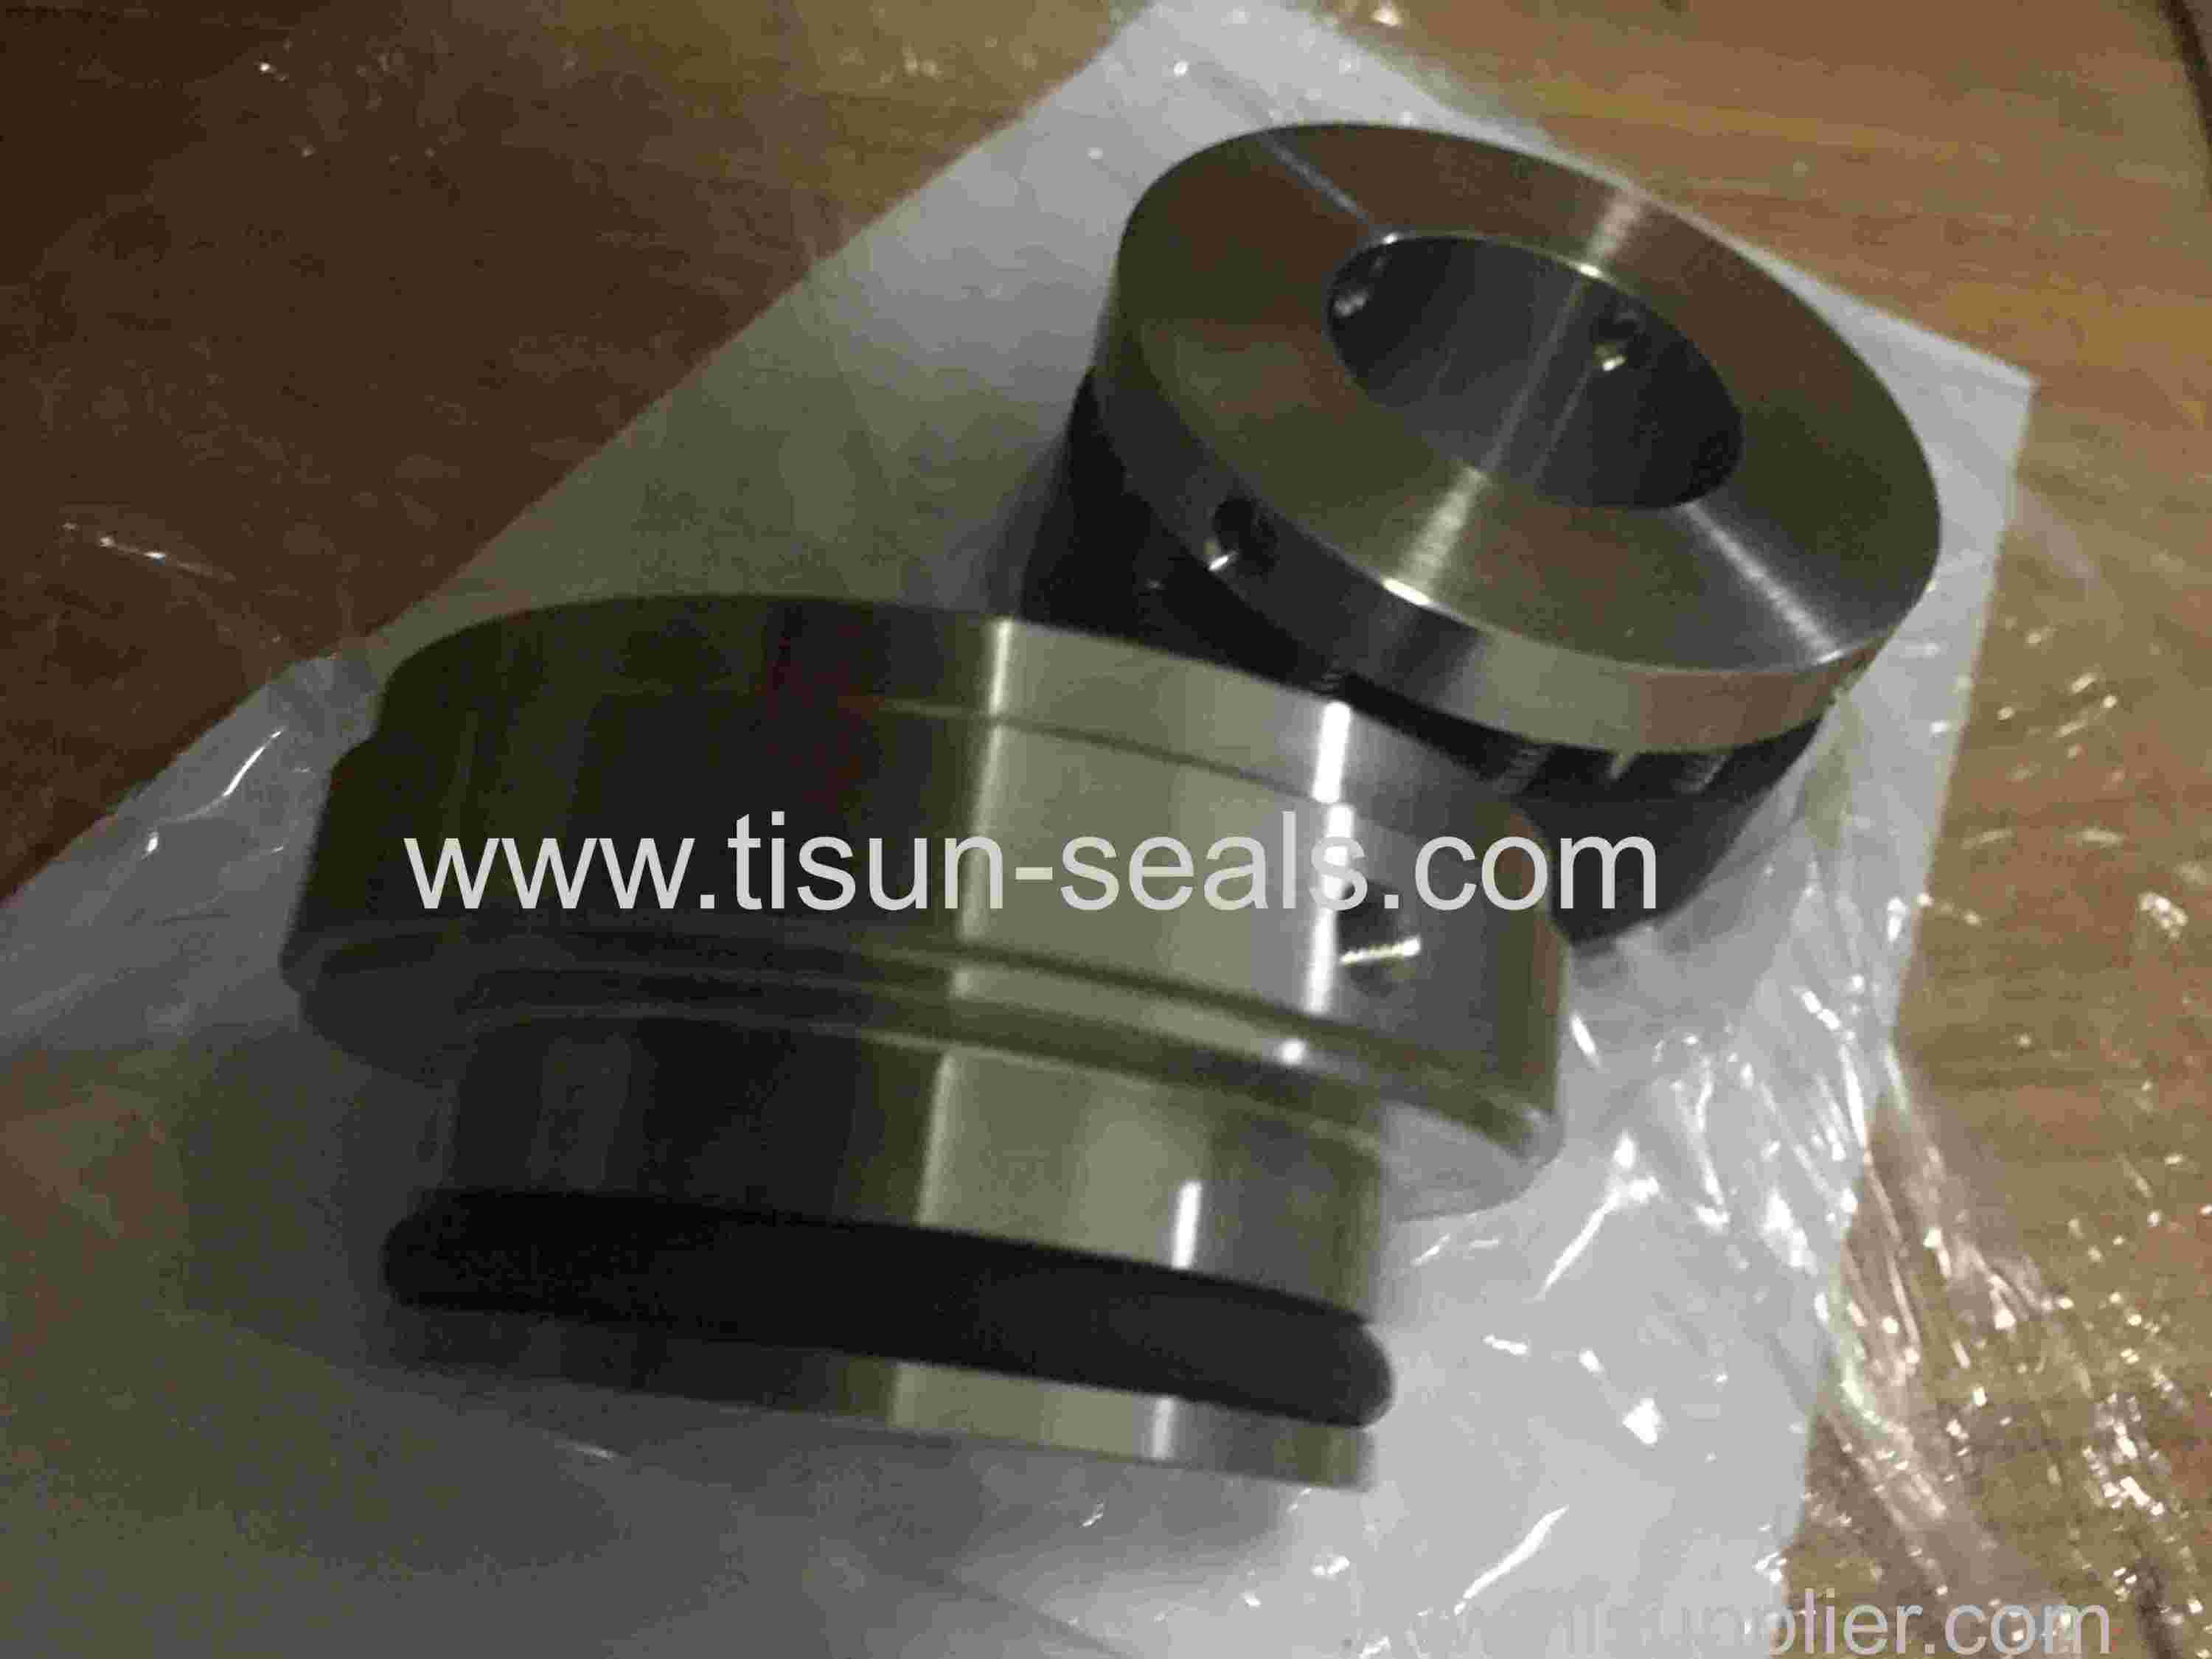 mechanical seals Introduction